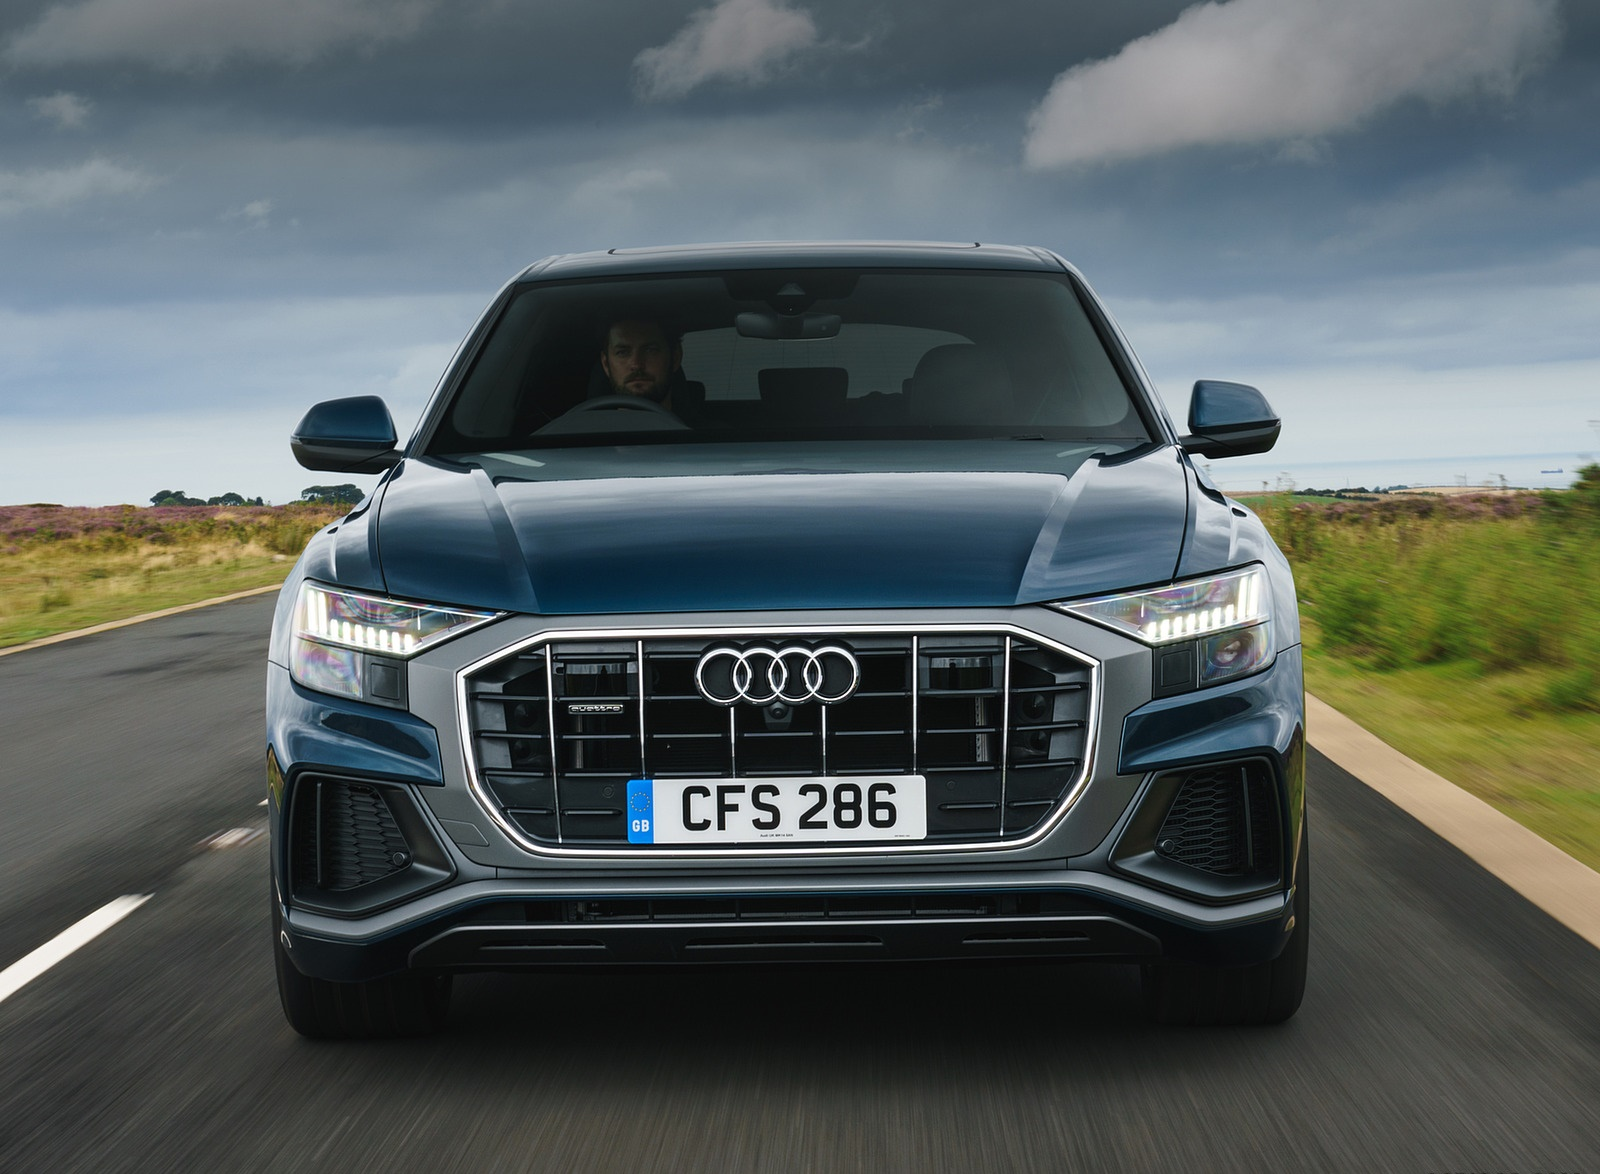 2019 Audi Q8 S Line 50 TDI Quattro (UK-Spec) Front Wallpaper (4)